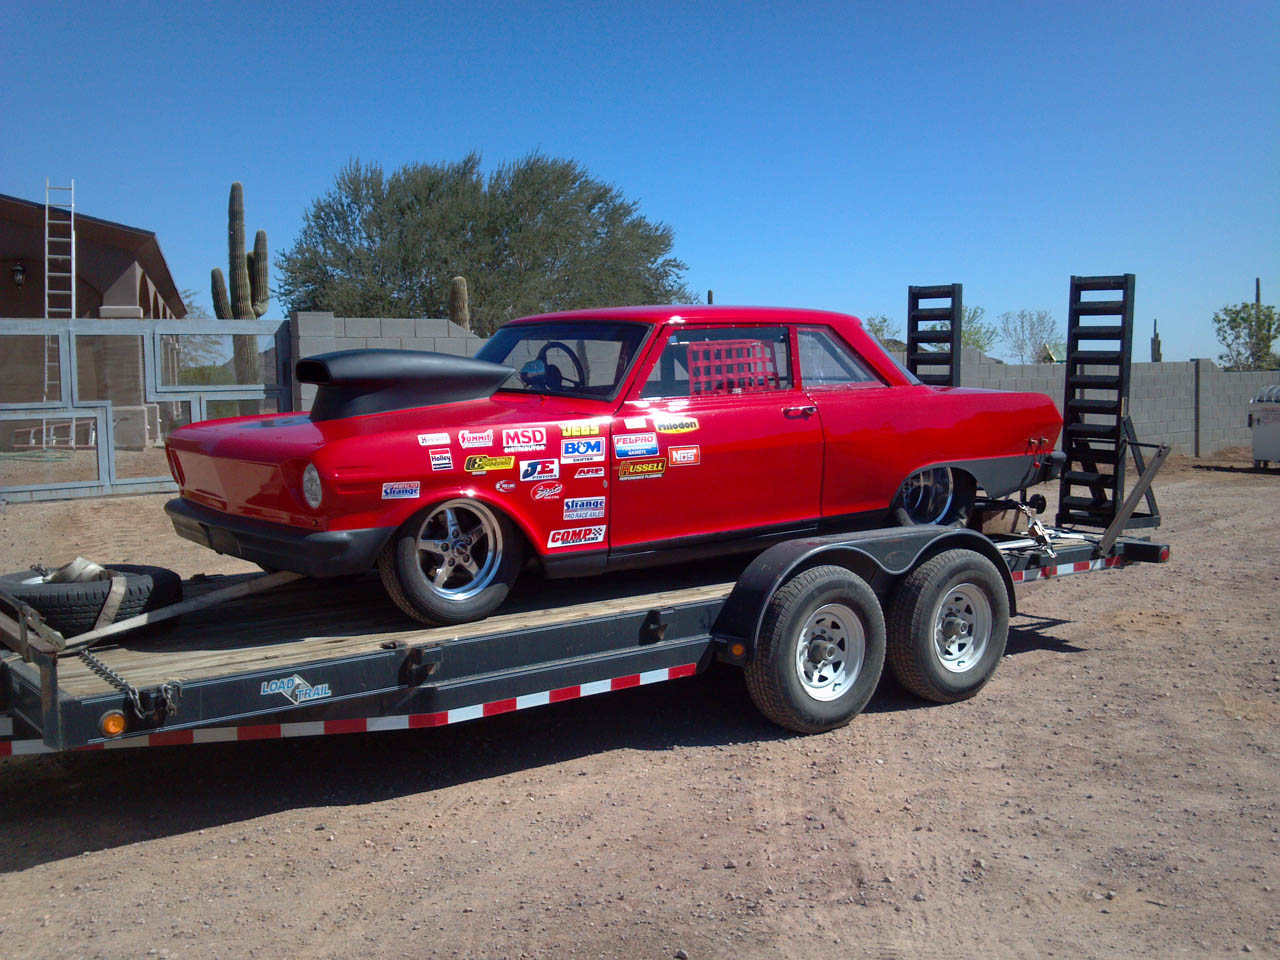 1964 Red Chevrolet Nova 2 picture, mods, upgrades